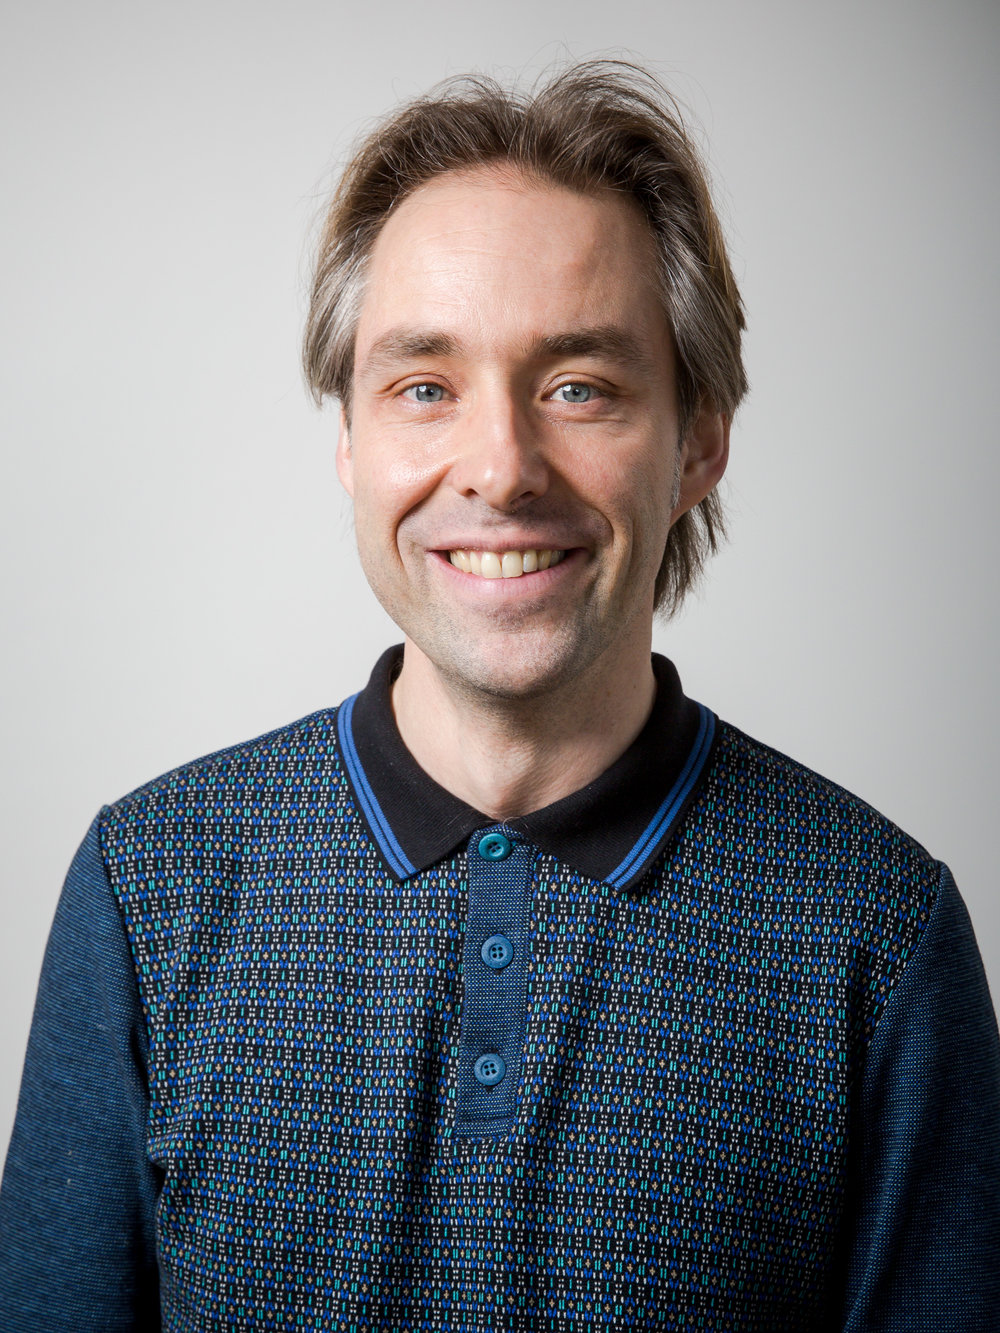 Bart van Melik <Br>Teacher